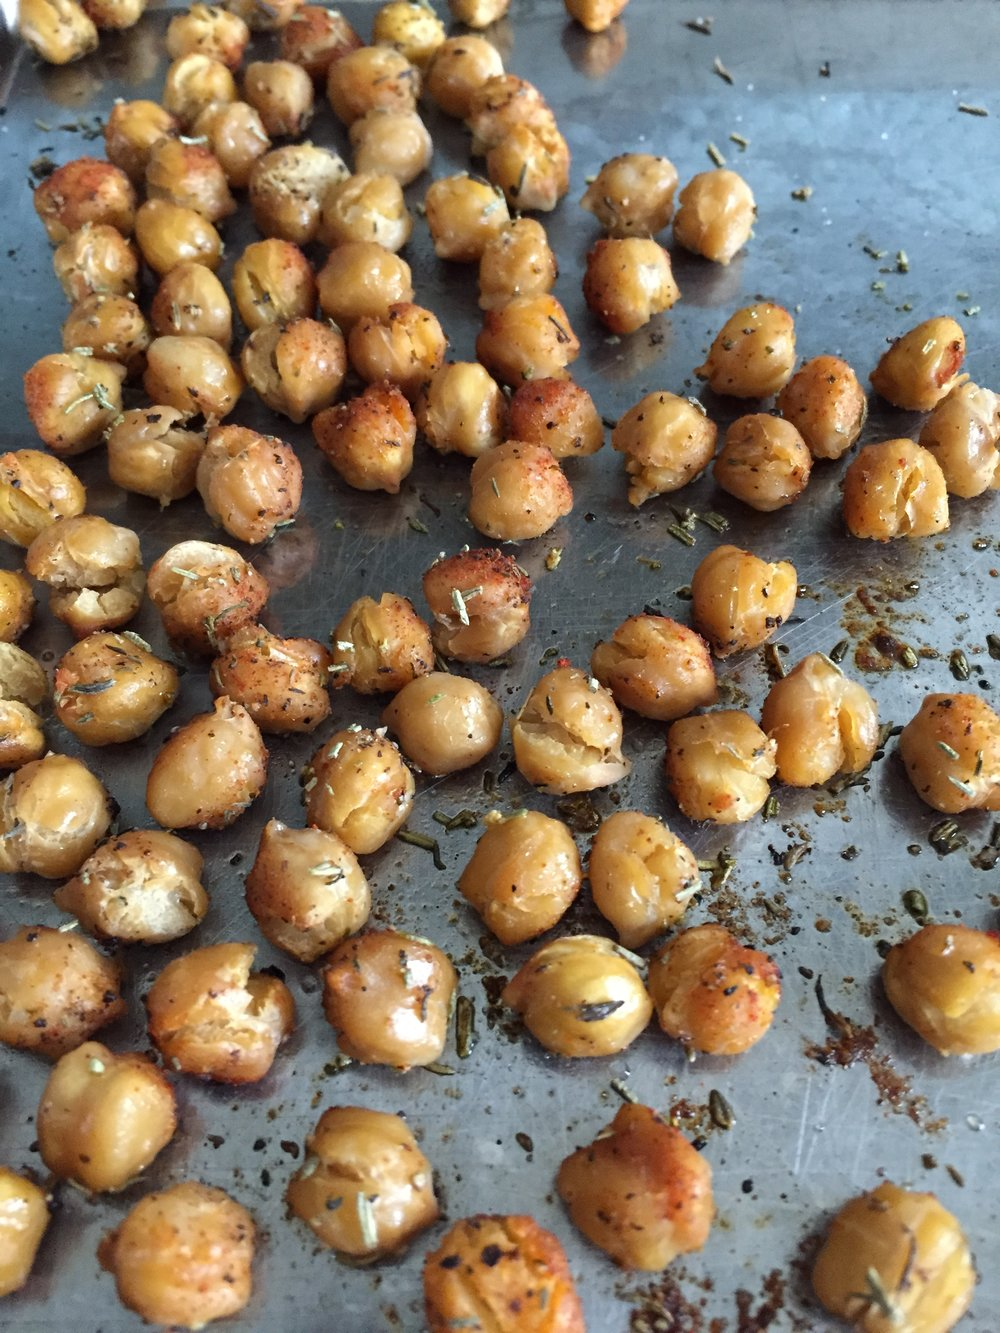 Looking for a salty, chewy, high-fiber, low-FODMAP snack? Try these roasted chick peas.